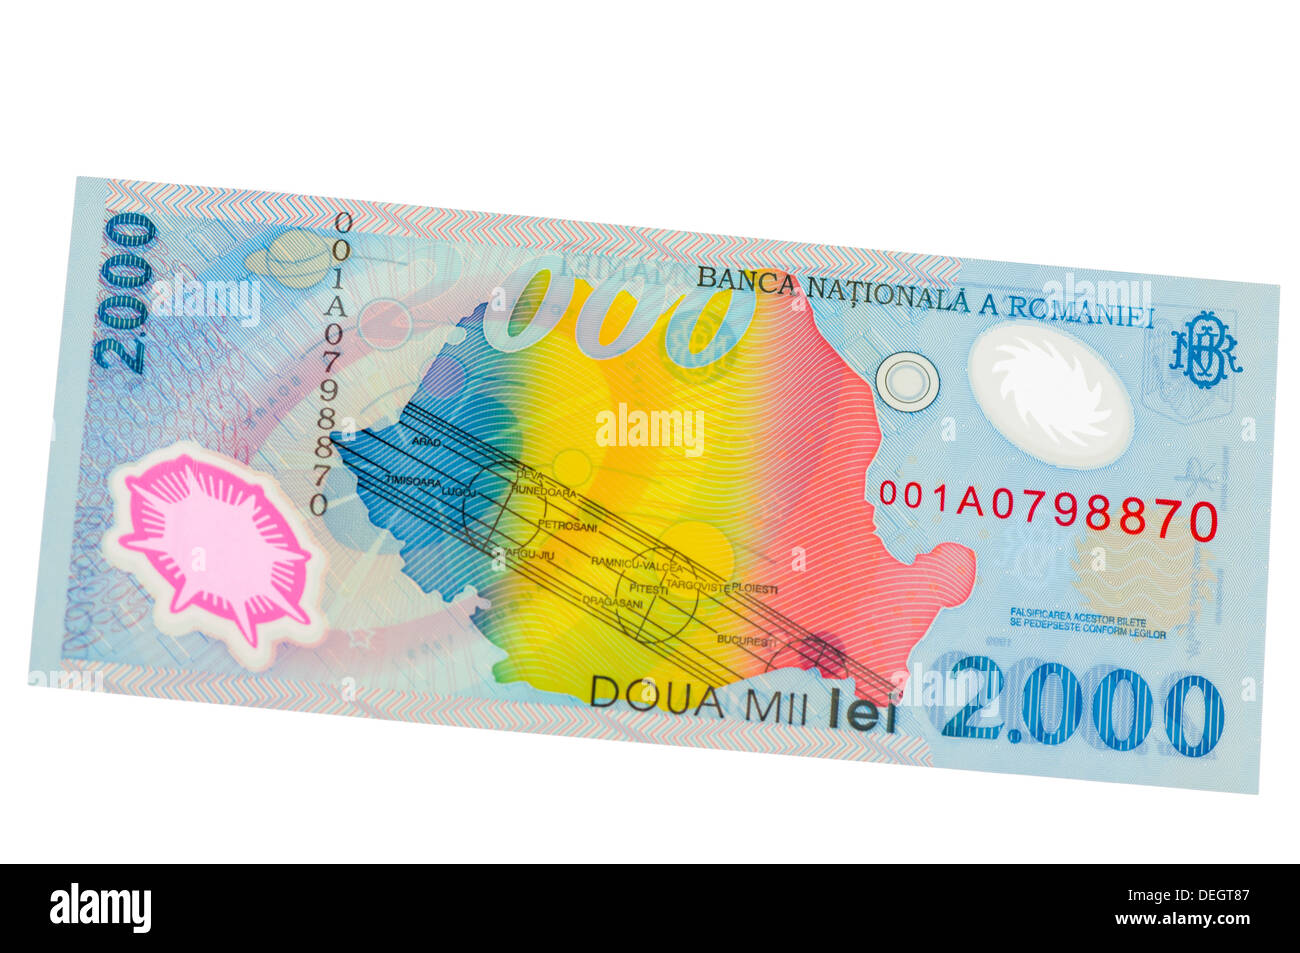 Banca Nationala A Romaniei (National Bank of Romania) 2000 Lei polymer (plastic) bank note - Stock Image